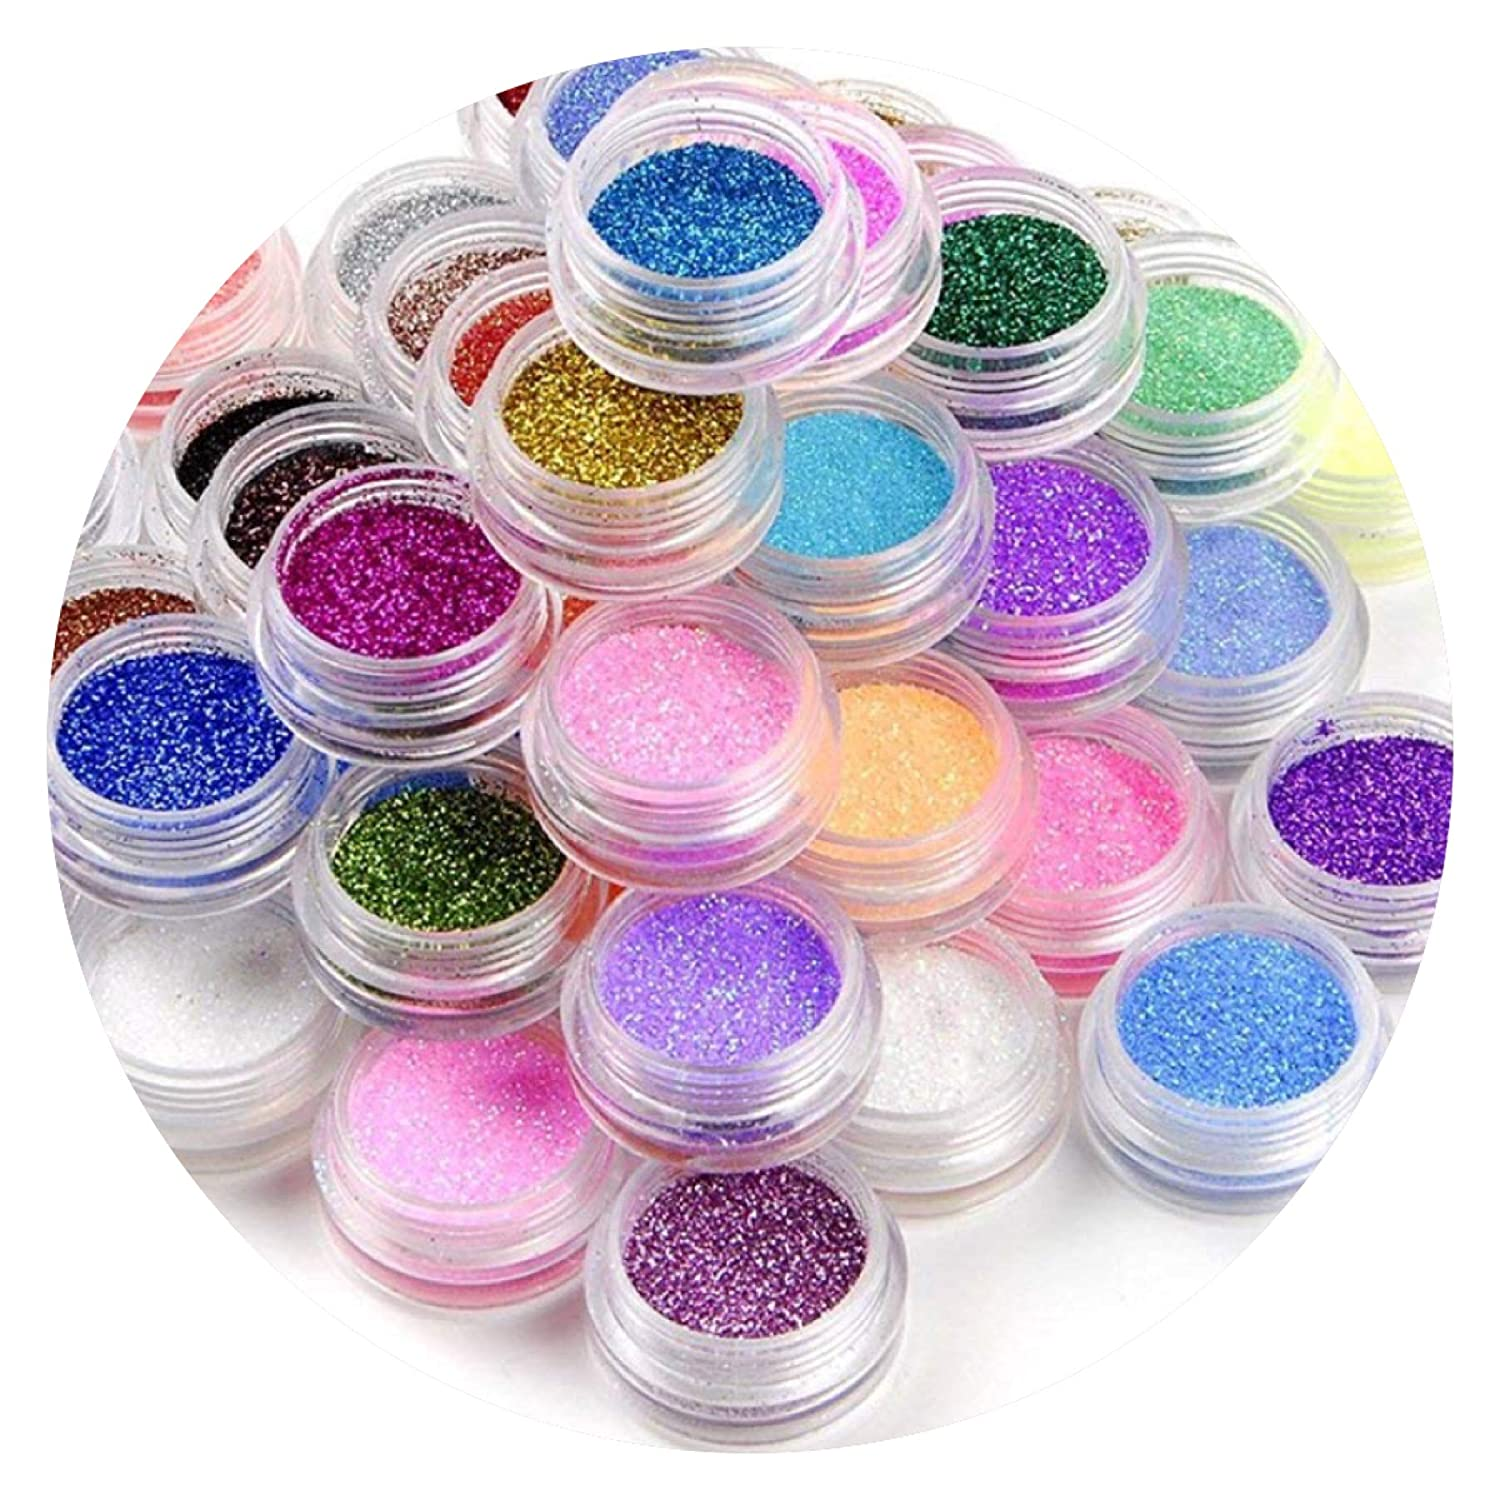 12 x Multiuse Glitter Pots Gorgeous Colours Fine Rainbow Dust Powder Nail Art Face Body Hair Decoration Design for Shellac Gel Nails and Regular Nail Polish Just Crystals Boutique